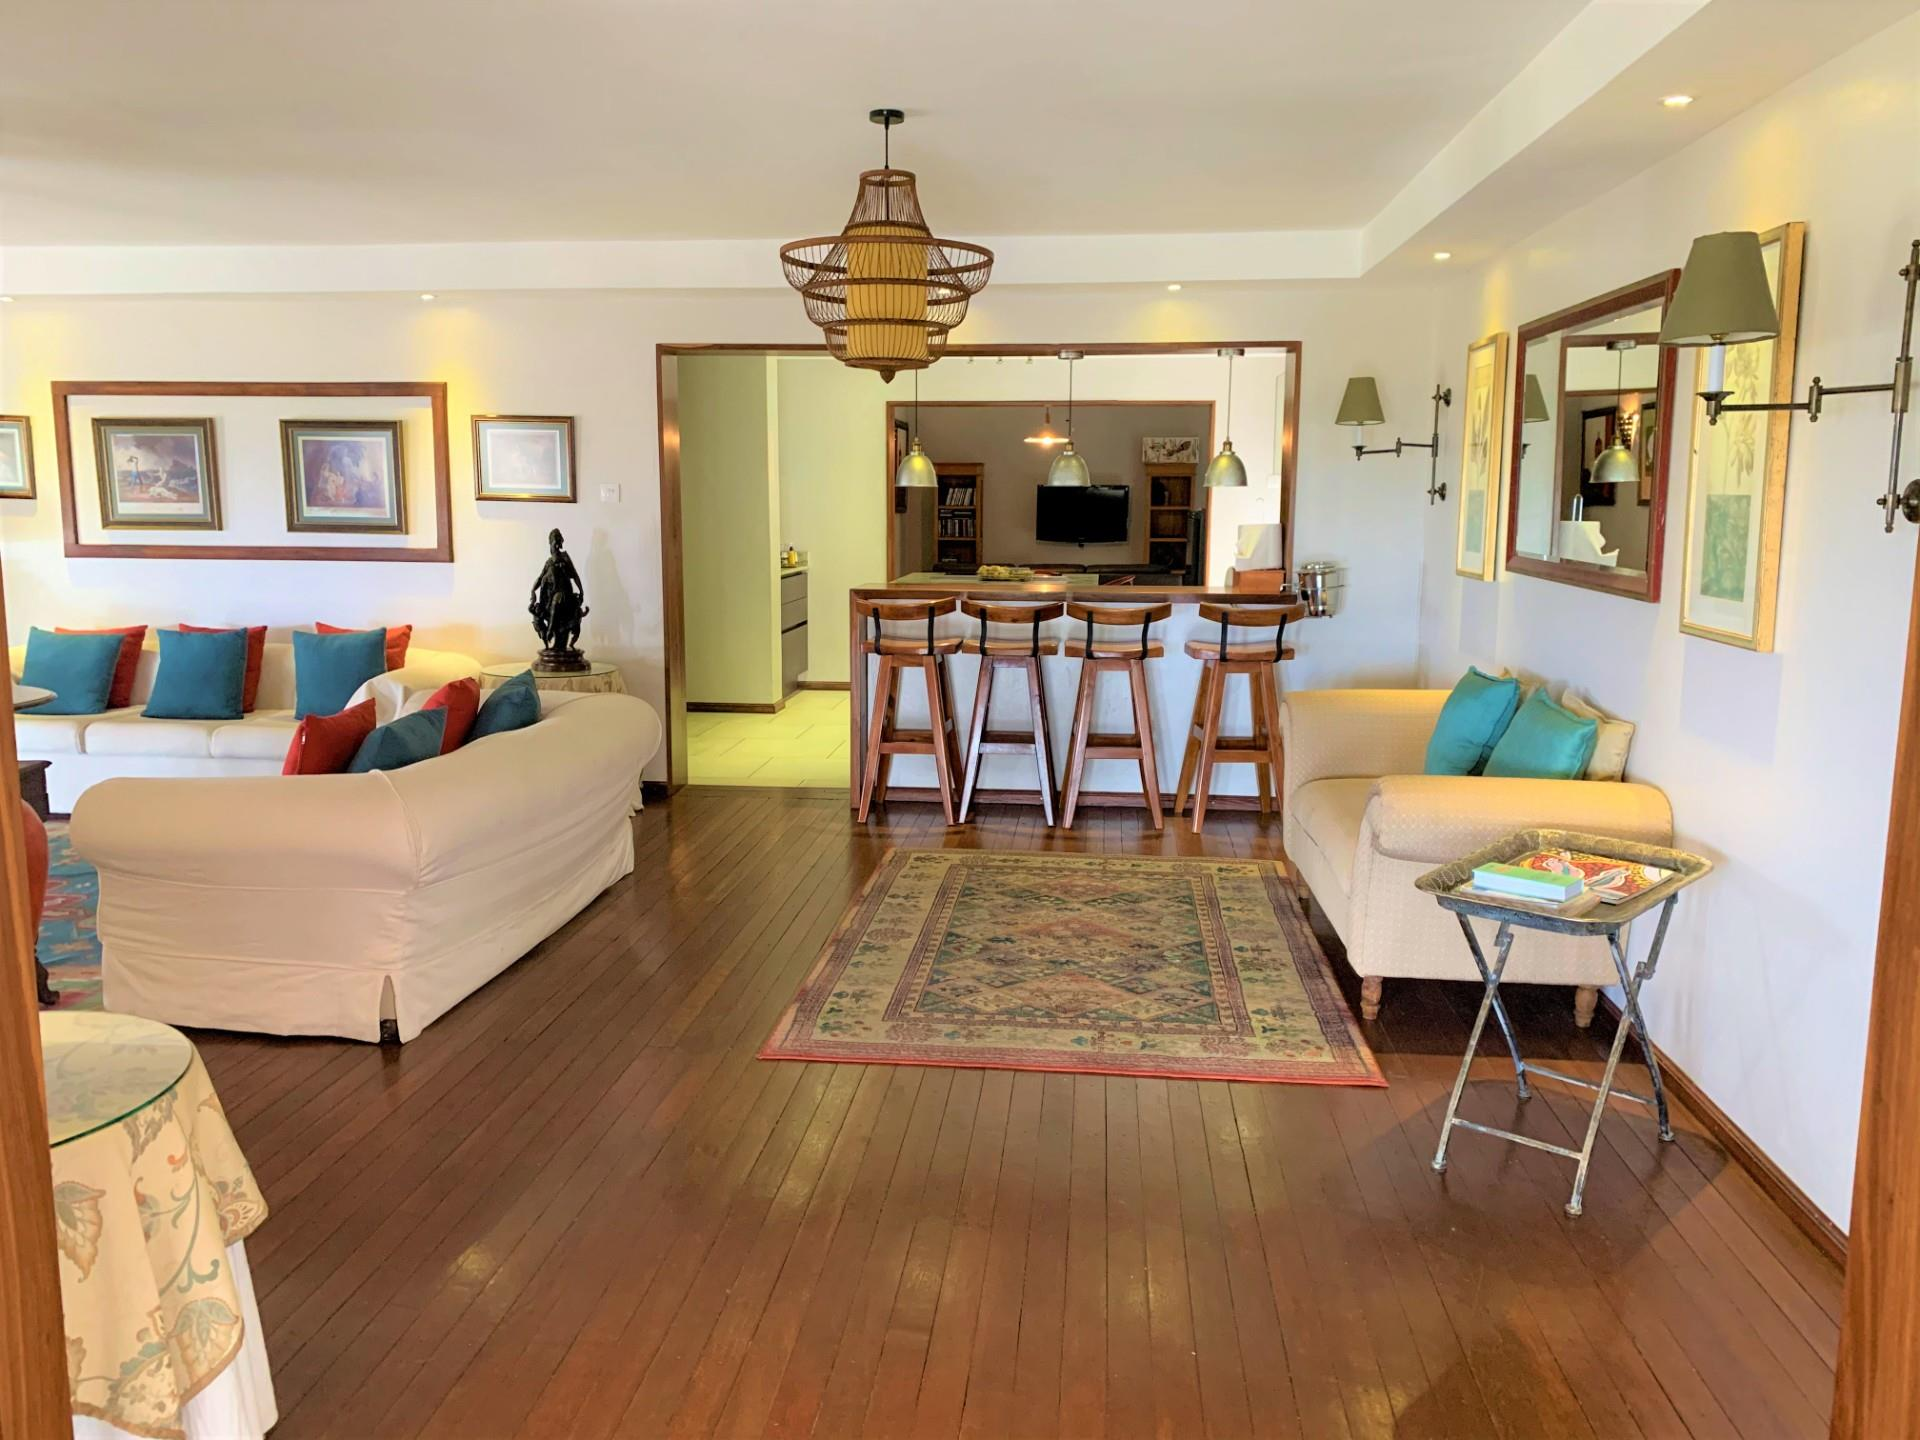 7 Bedroom House For Sale in Tamarin